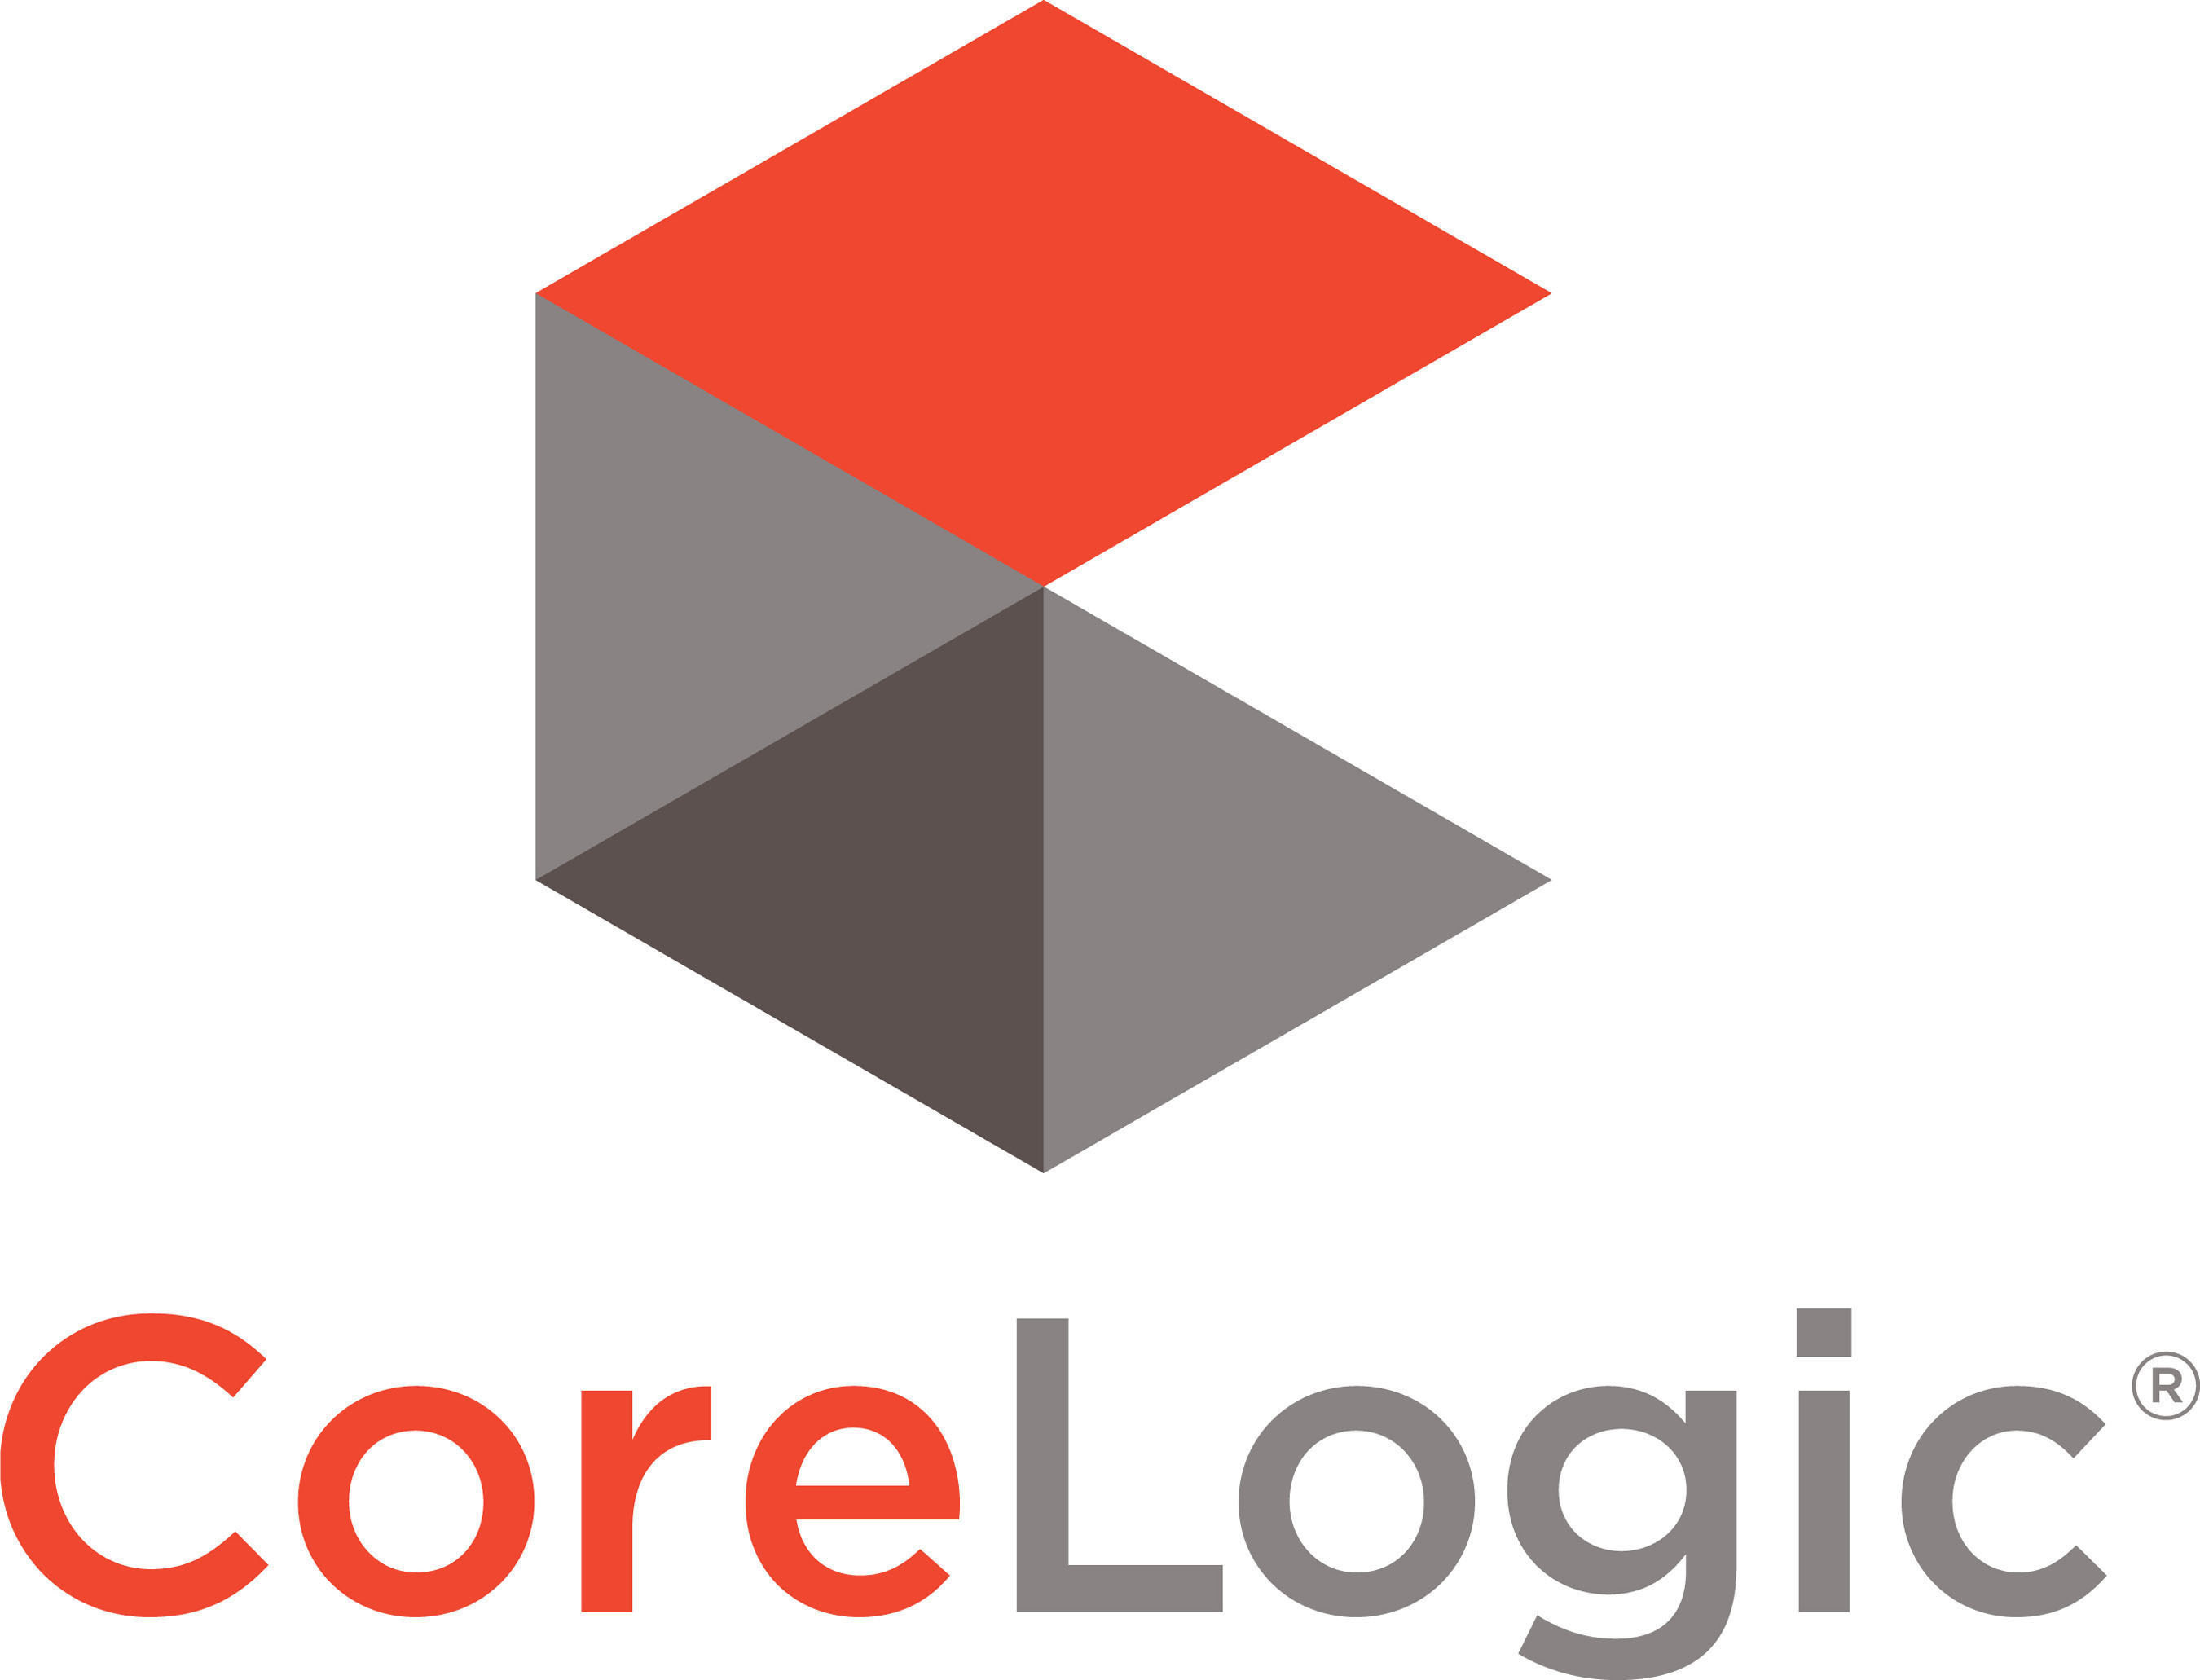 CoreLogic Reports 41,000 Completed Foreclosures in March 2015